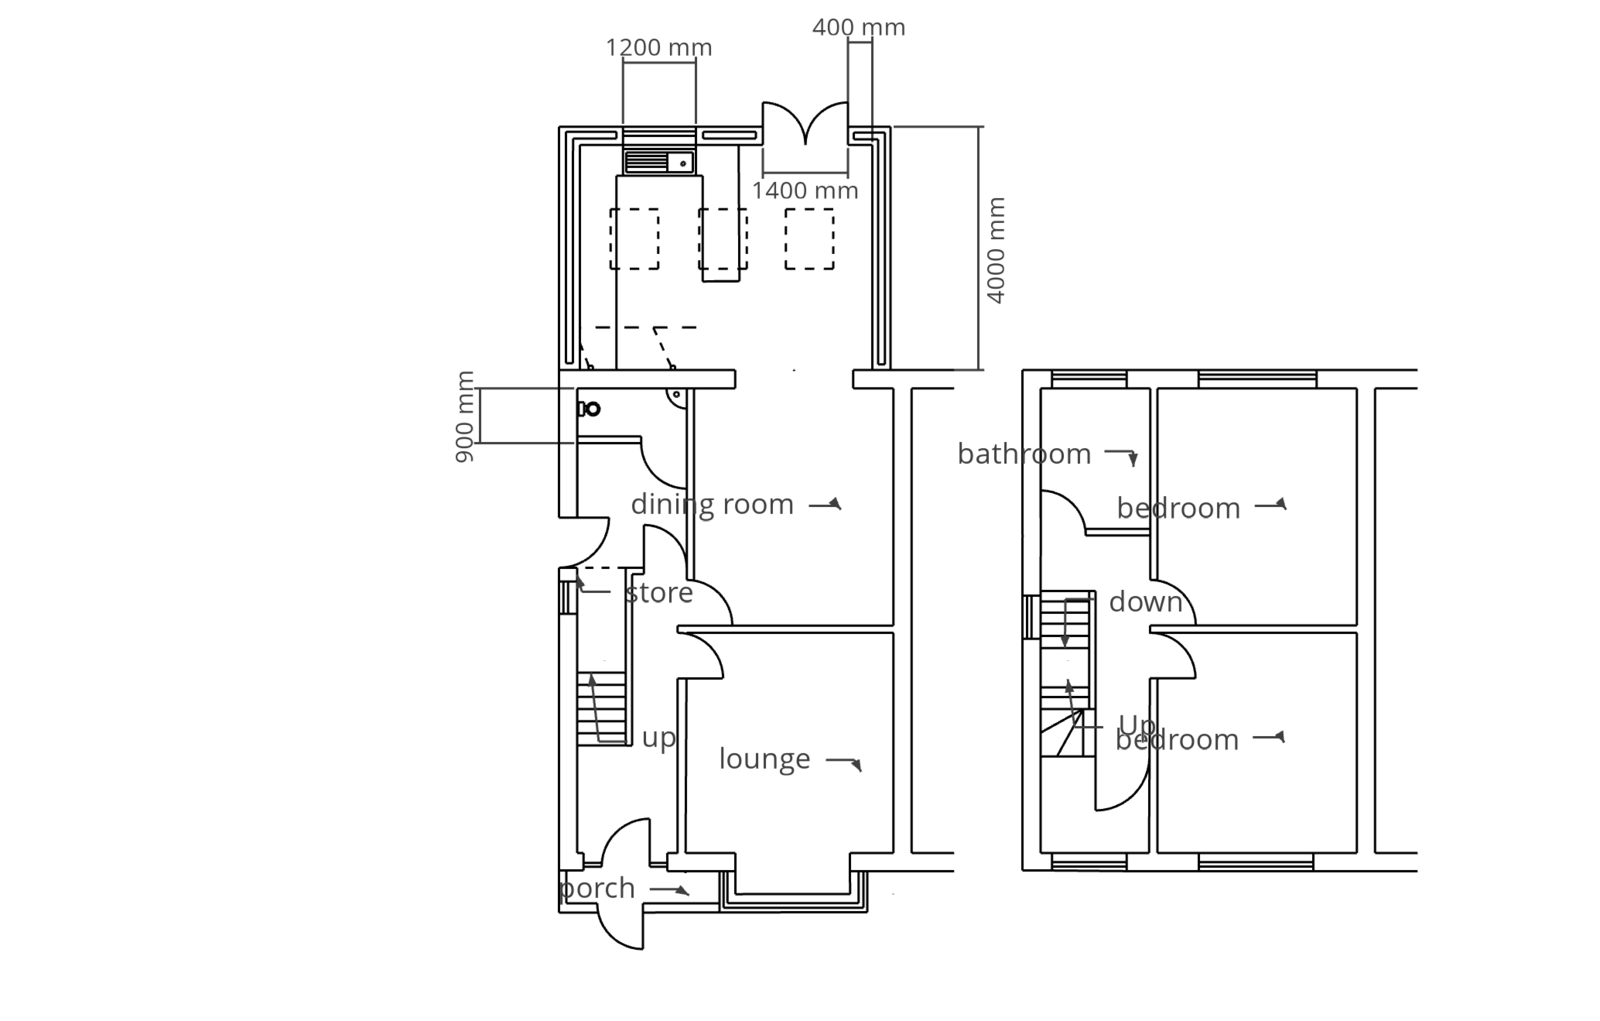 kitchen extension plan.png